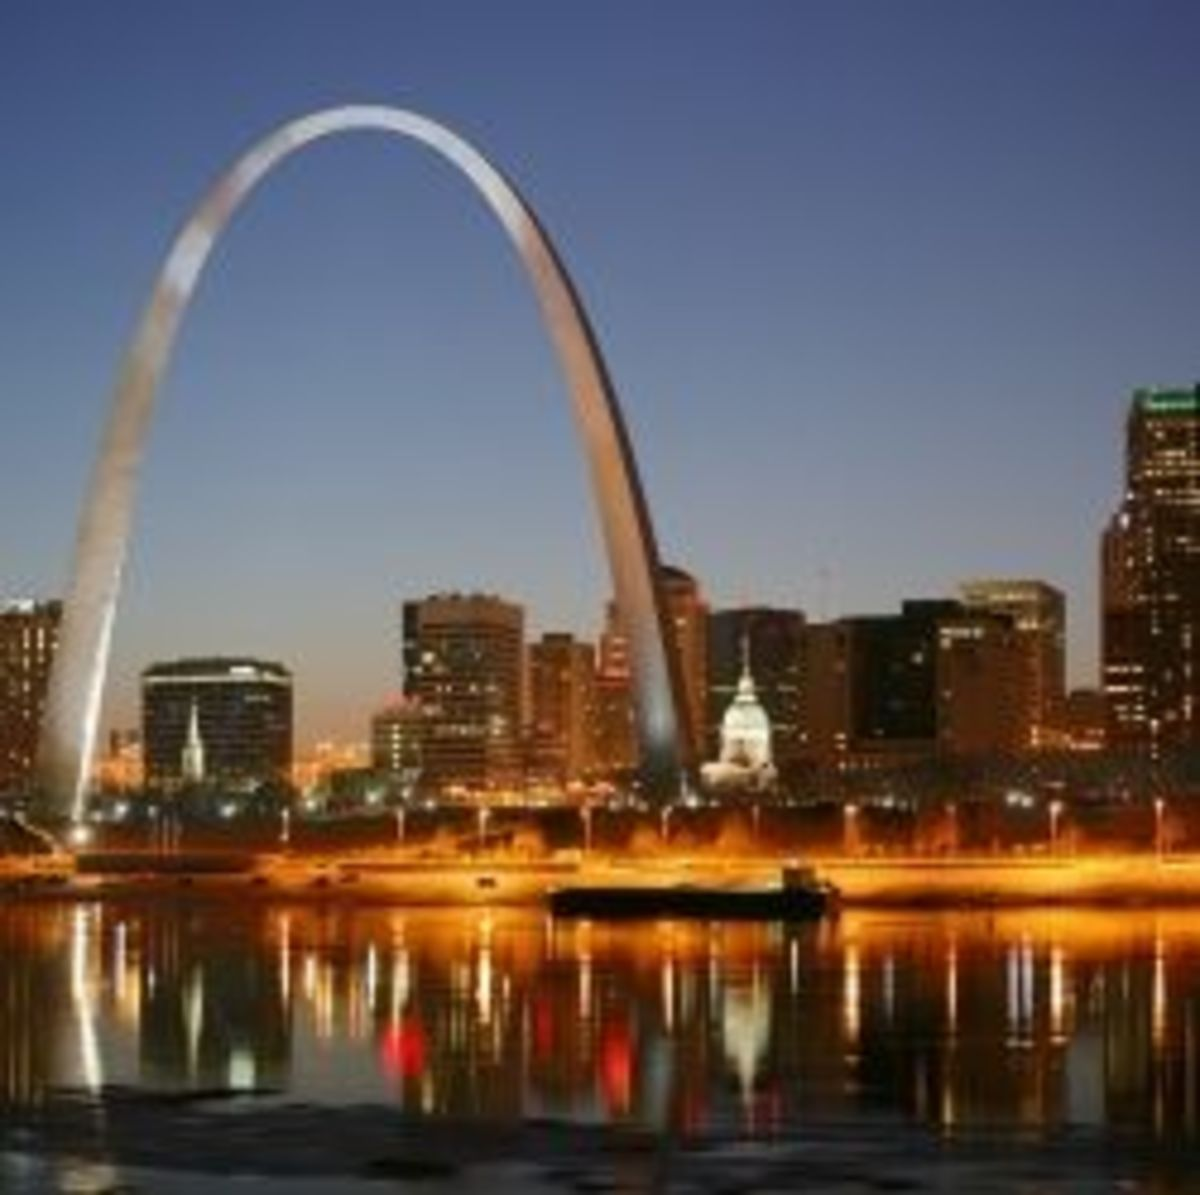 Missouri for Travelers & Teachers